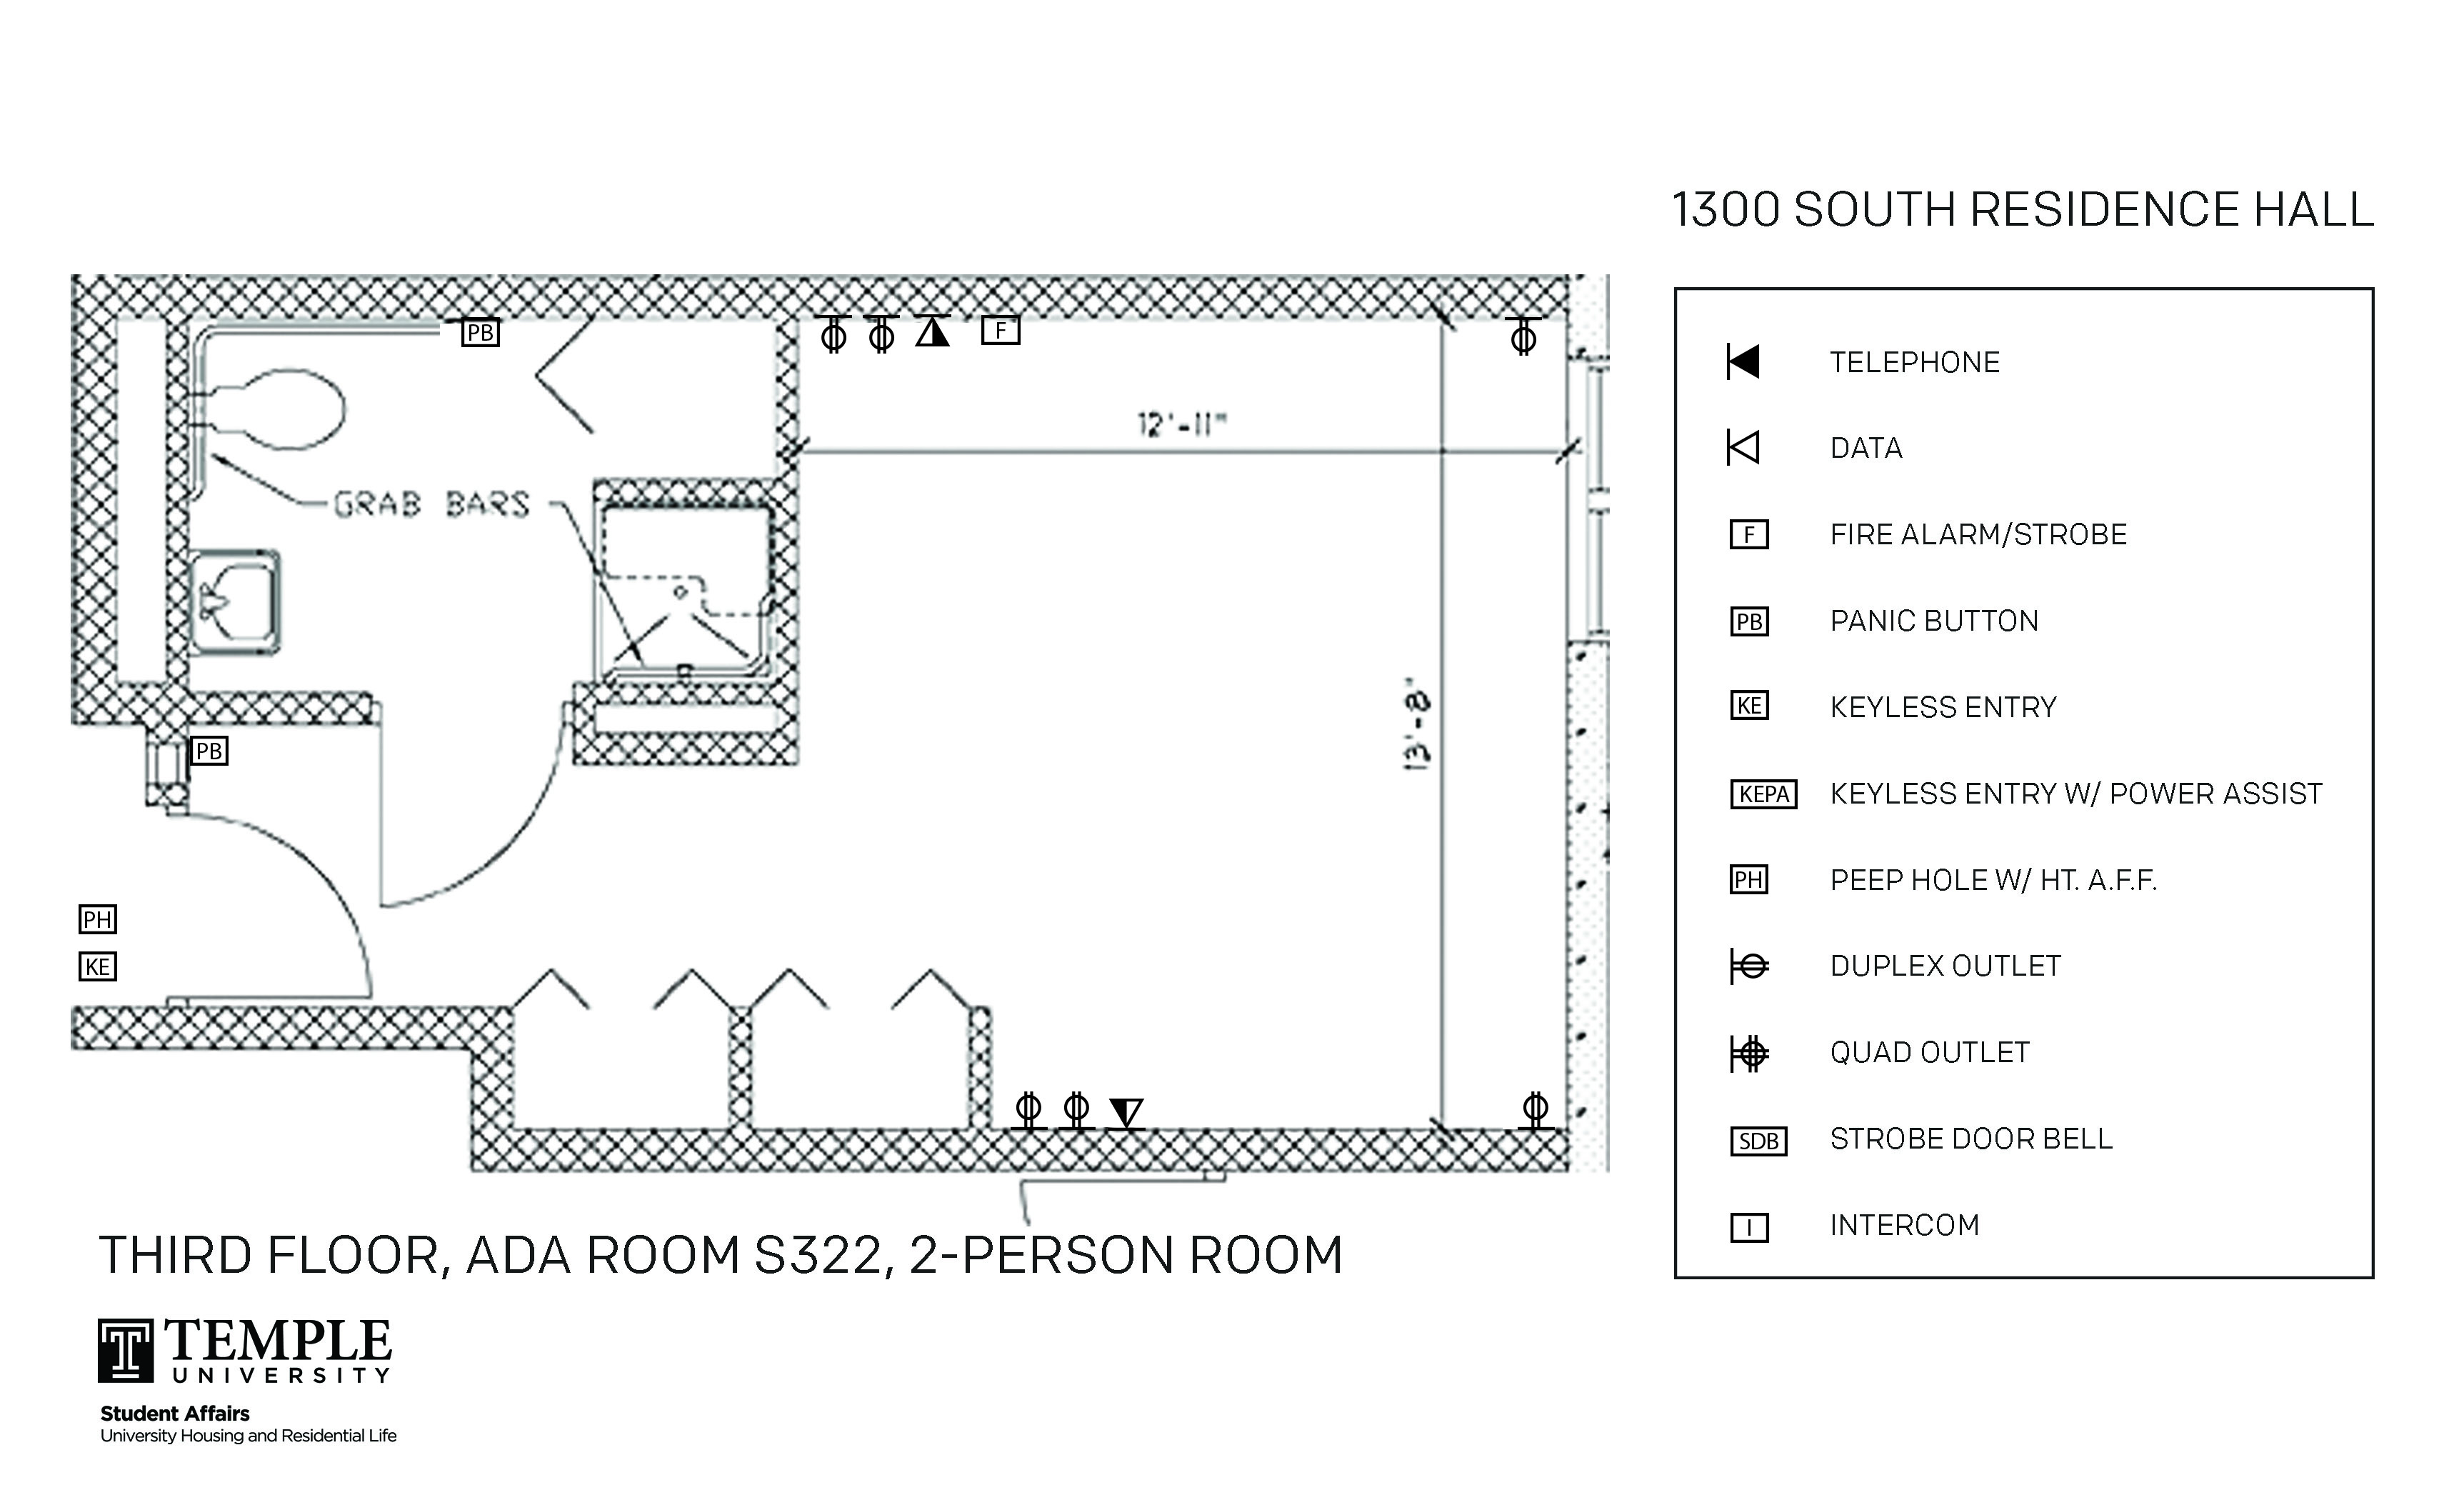 Accessible Room Diagrams: 3rd Floor Room S322